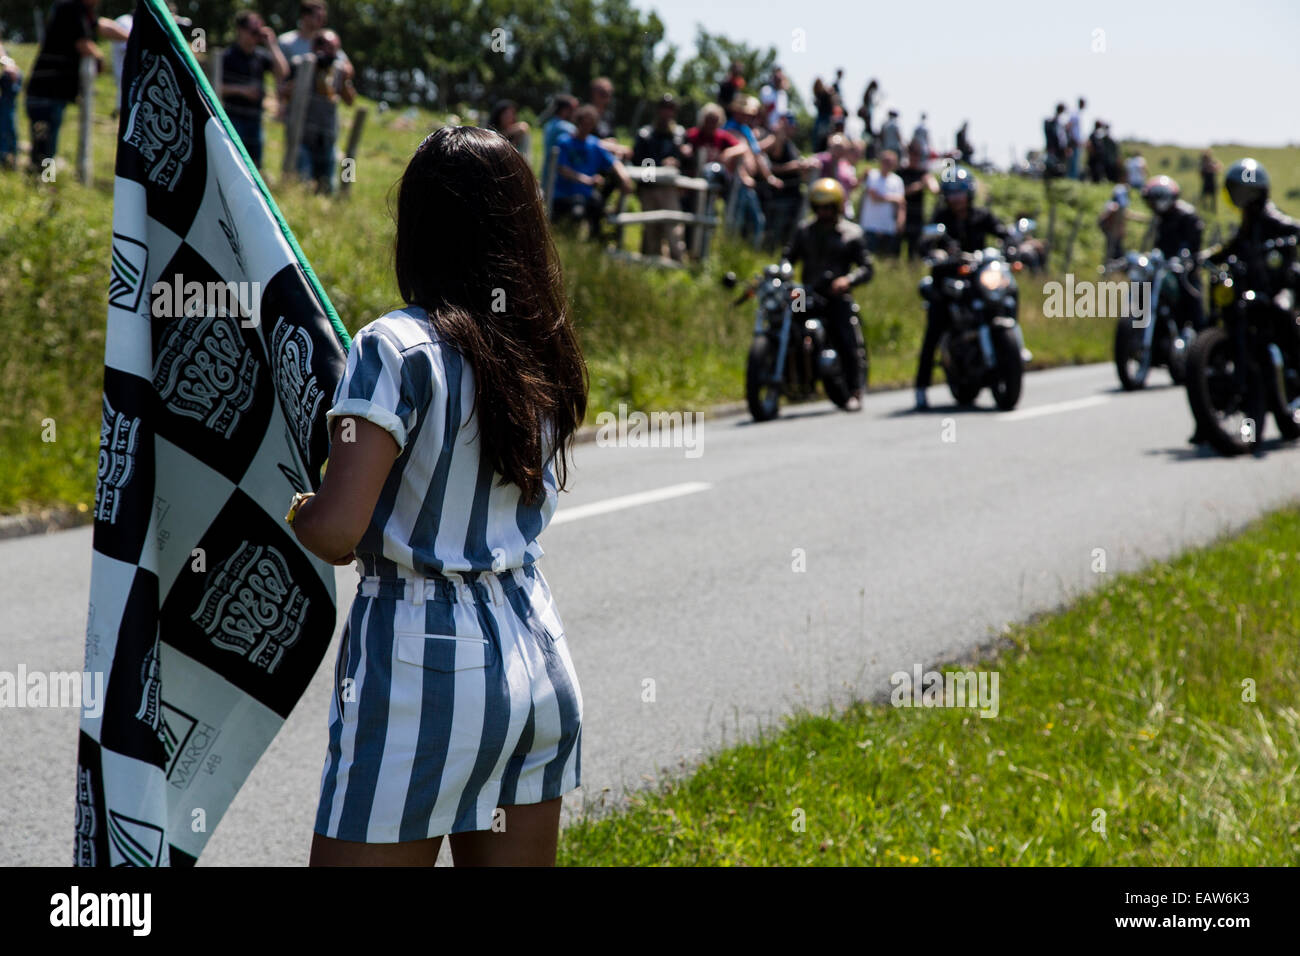 Participants awaiting the race to be started in the custom motorbike Wheels and Waves race in Biarritz, France. - Stock Image